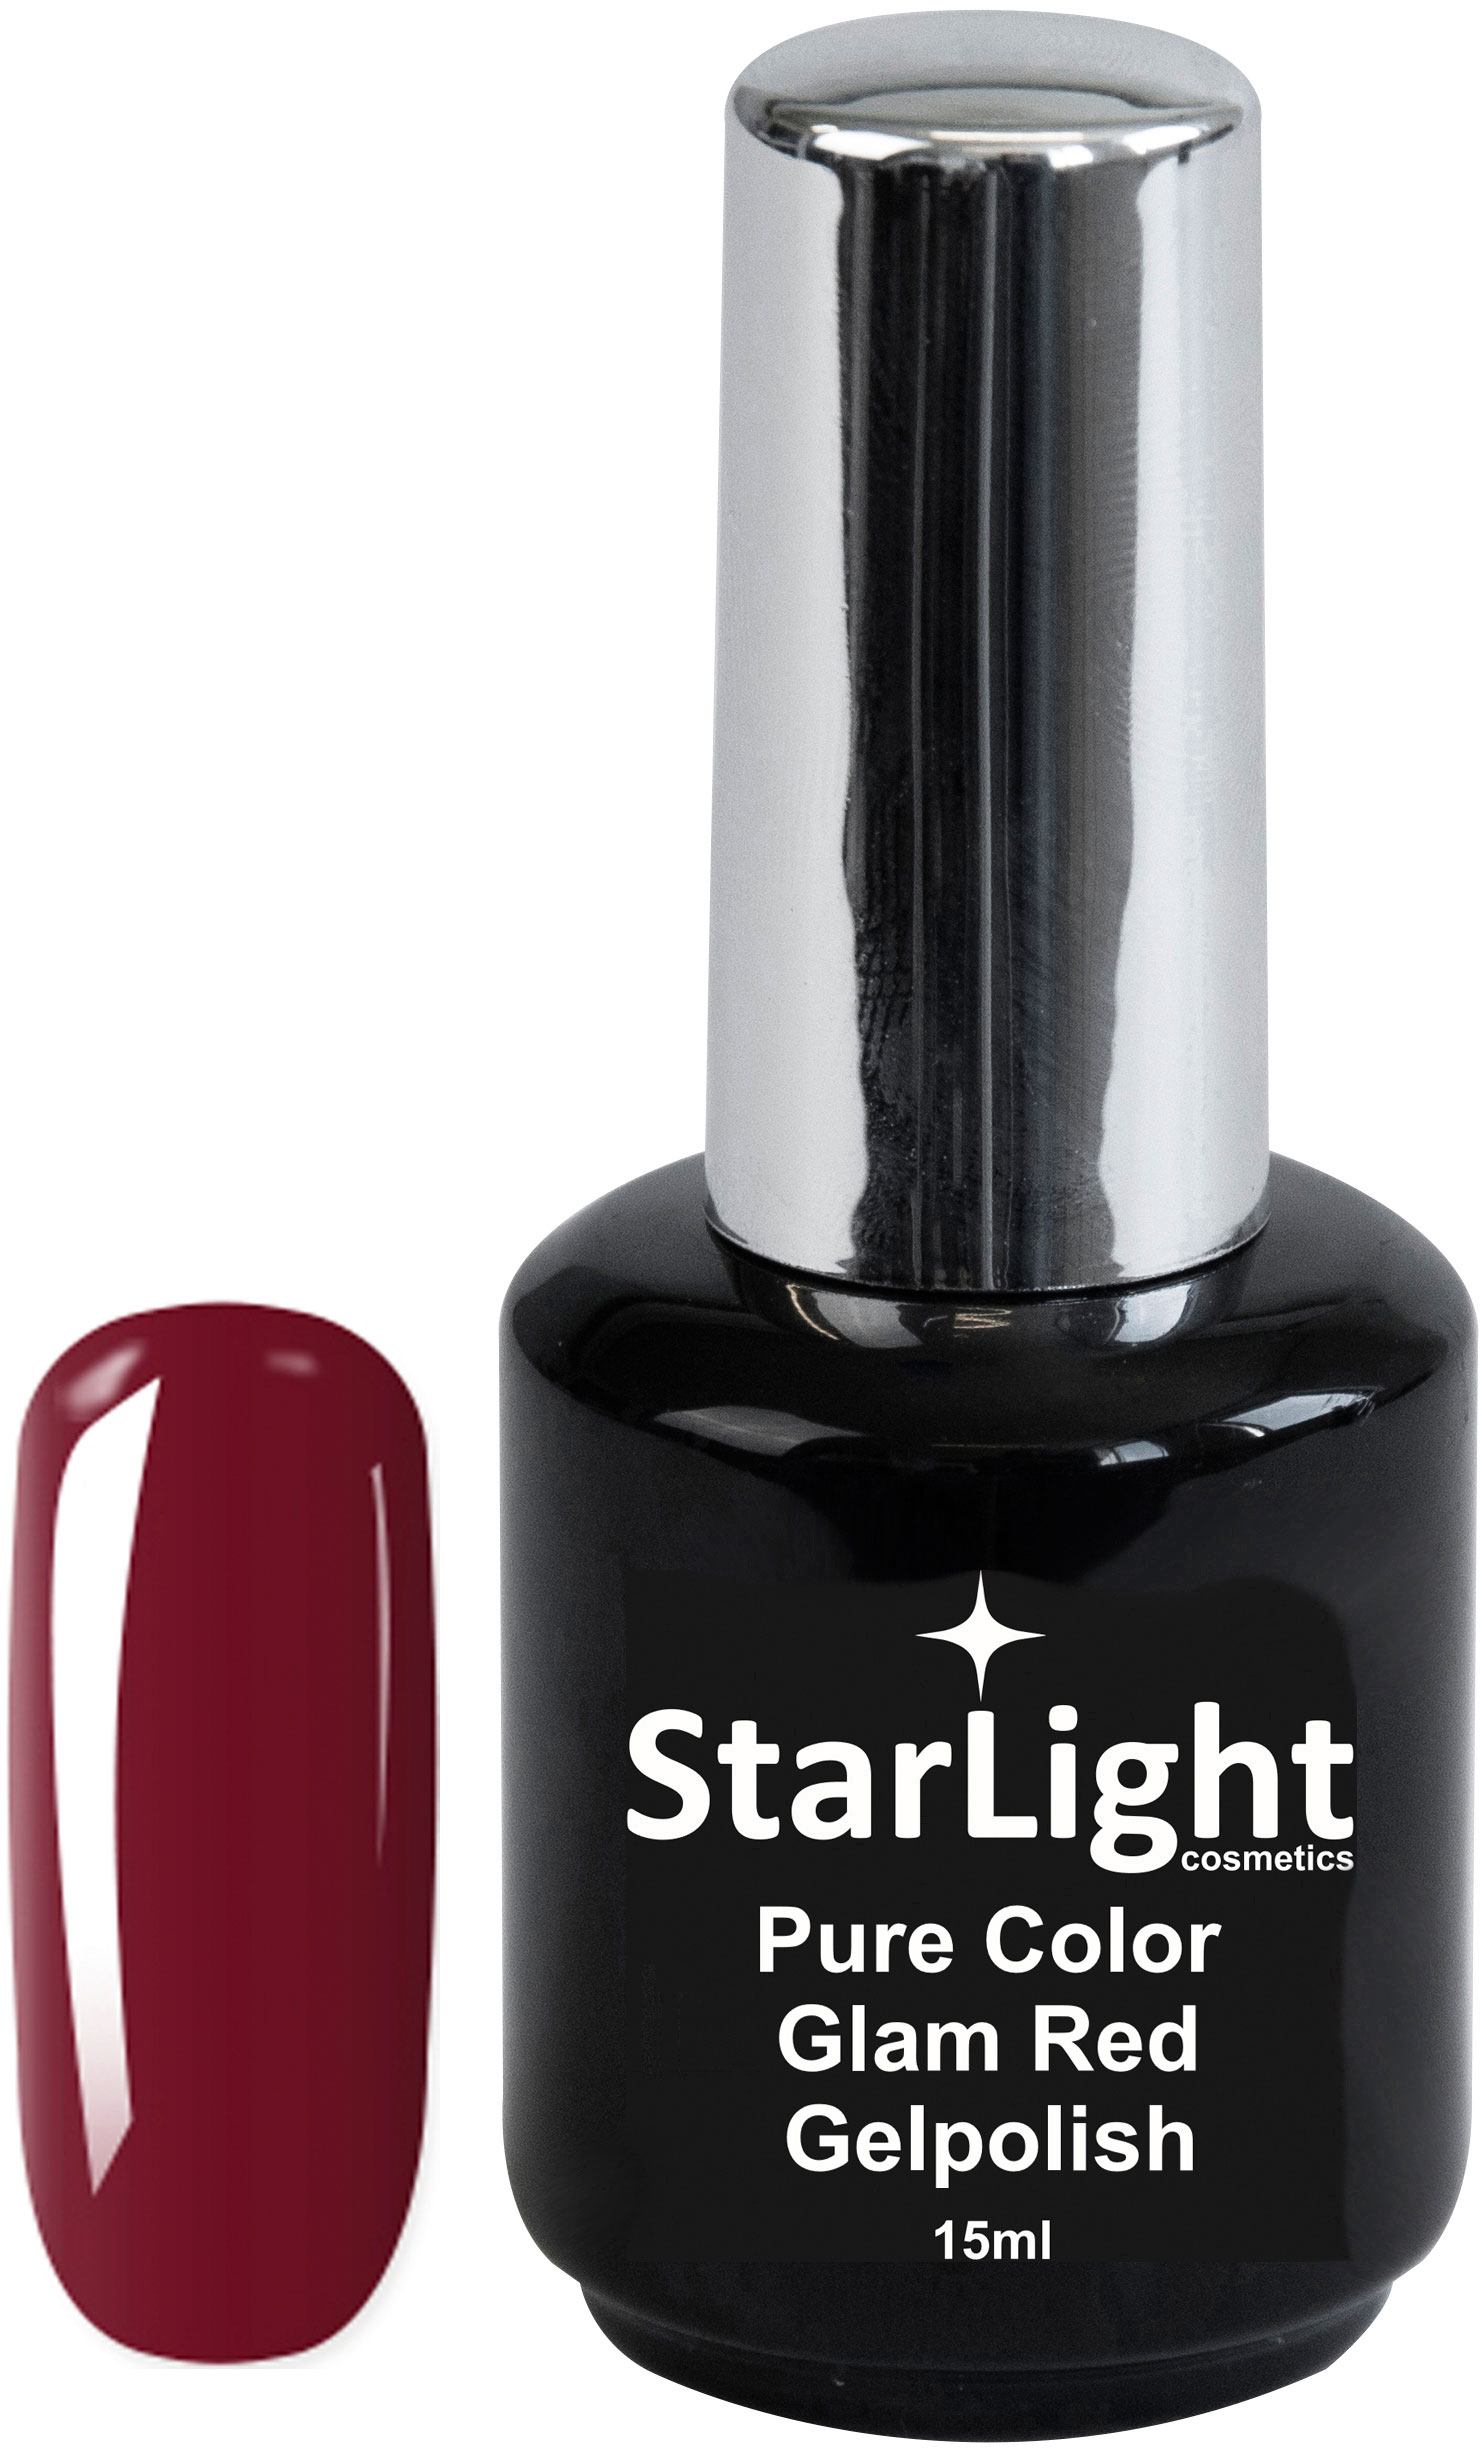 Naglar Gelpolish Pure Color Glam Red - 15 ml